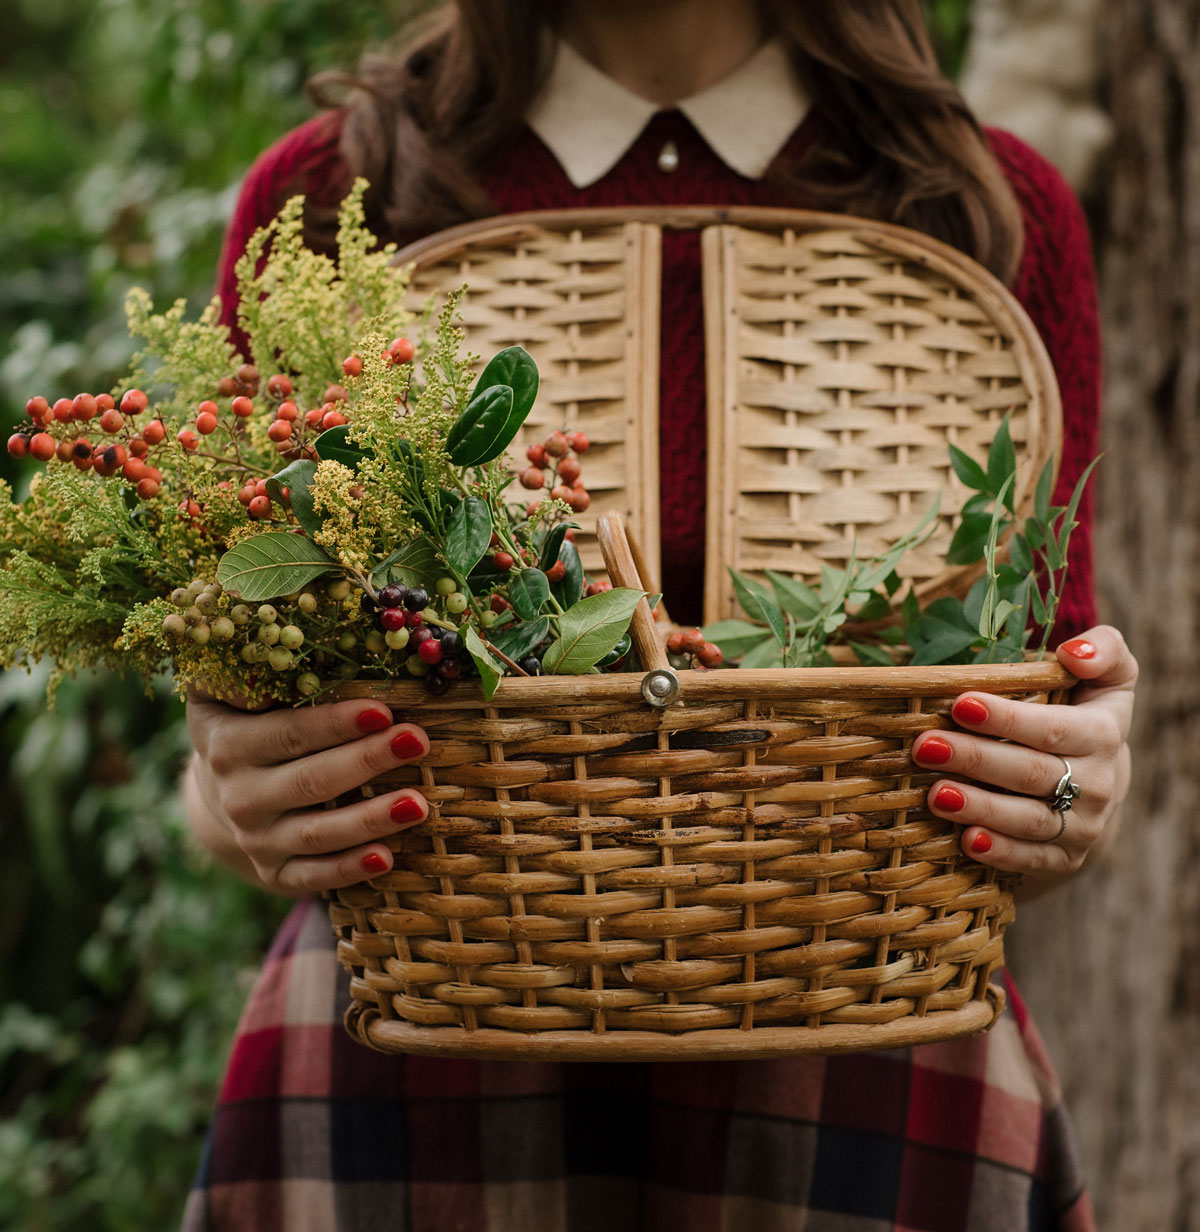 Woman in red sweater holding a foraging basket with goldenrod in it